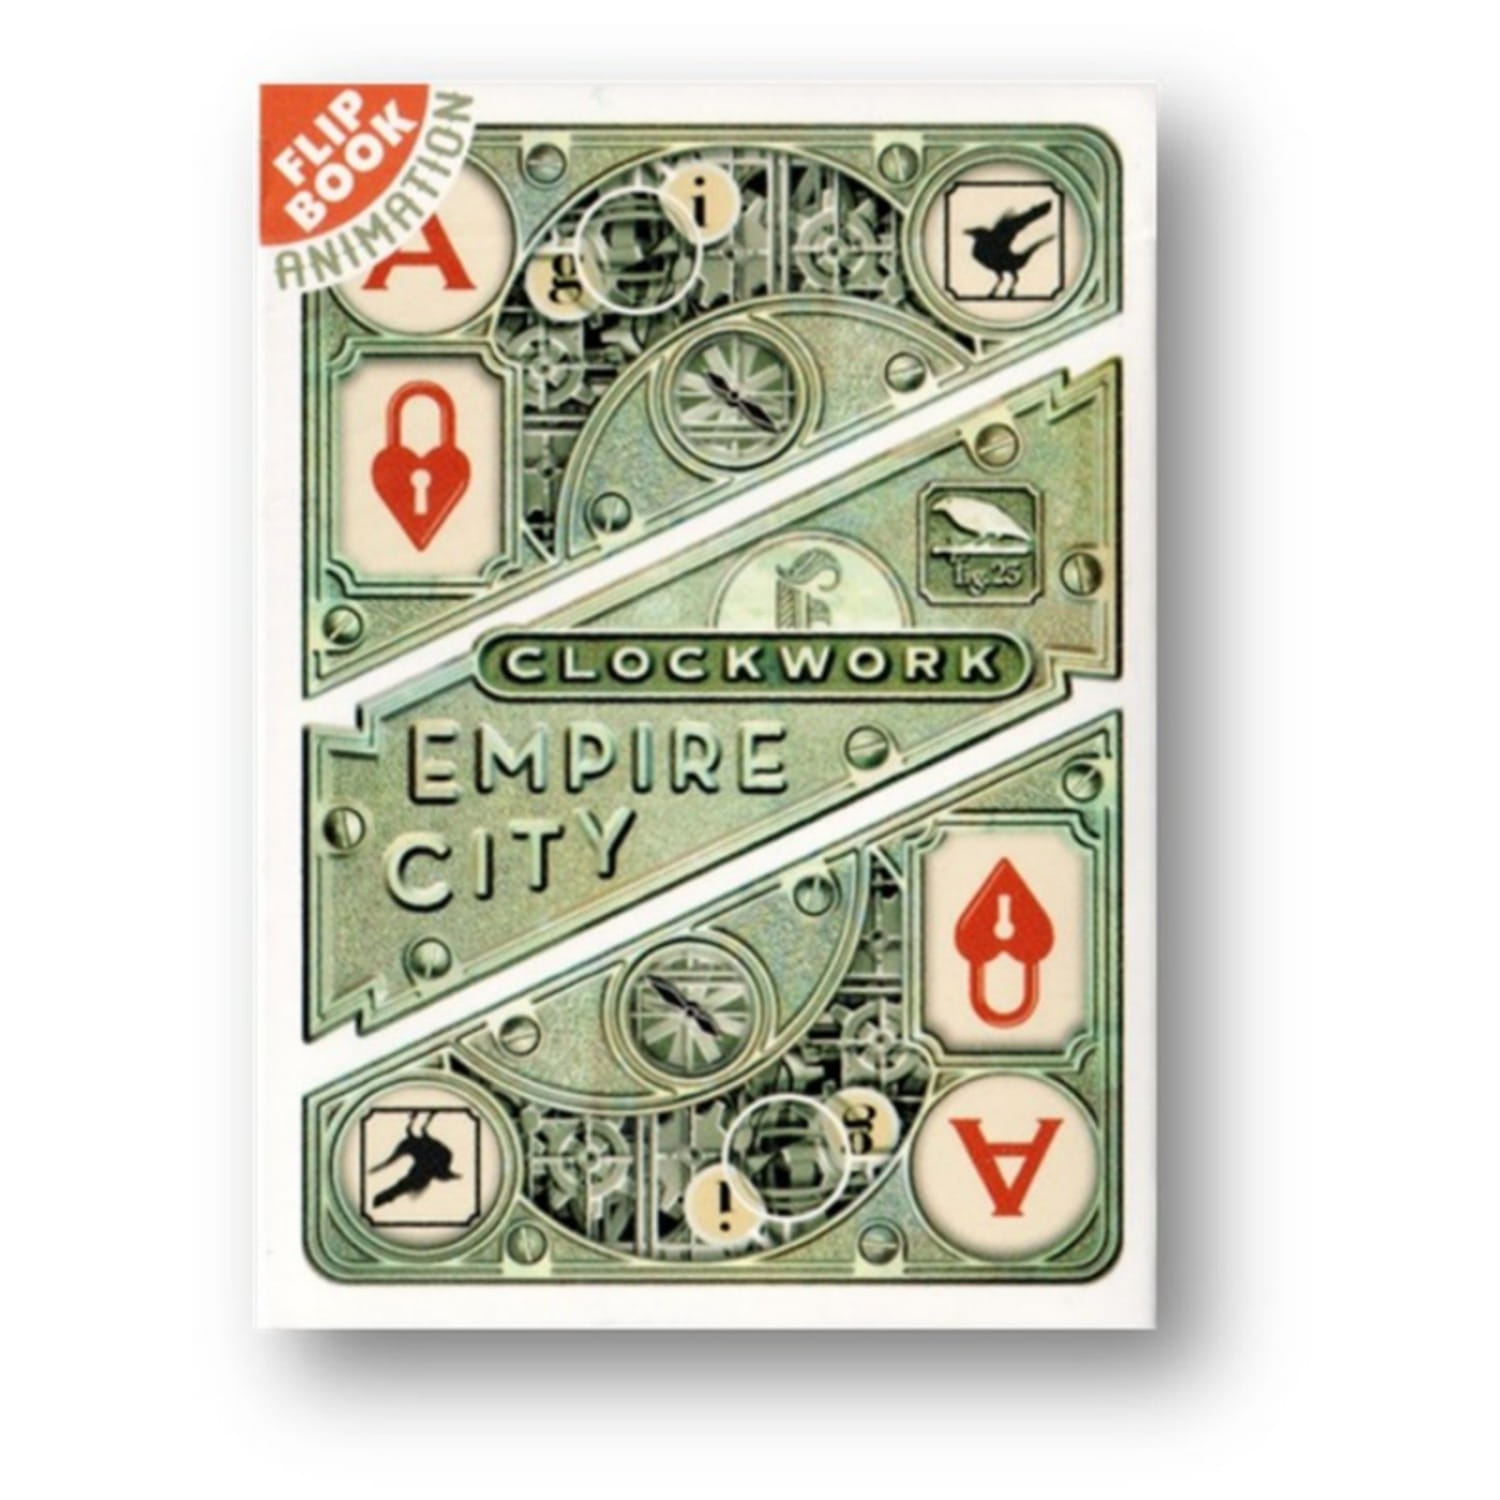 클록웍 엠파이어덱(한정판)Clockwork Empire Playing Cards by fig.23